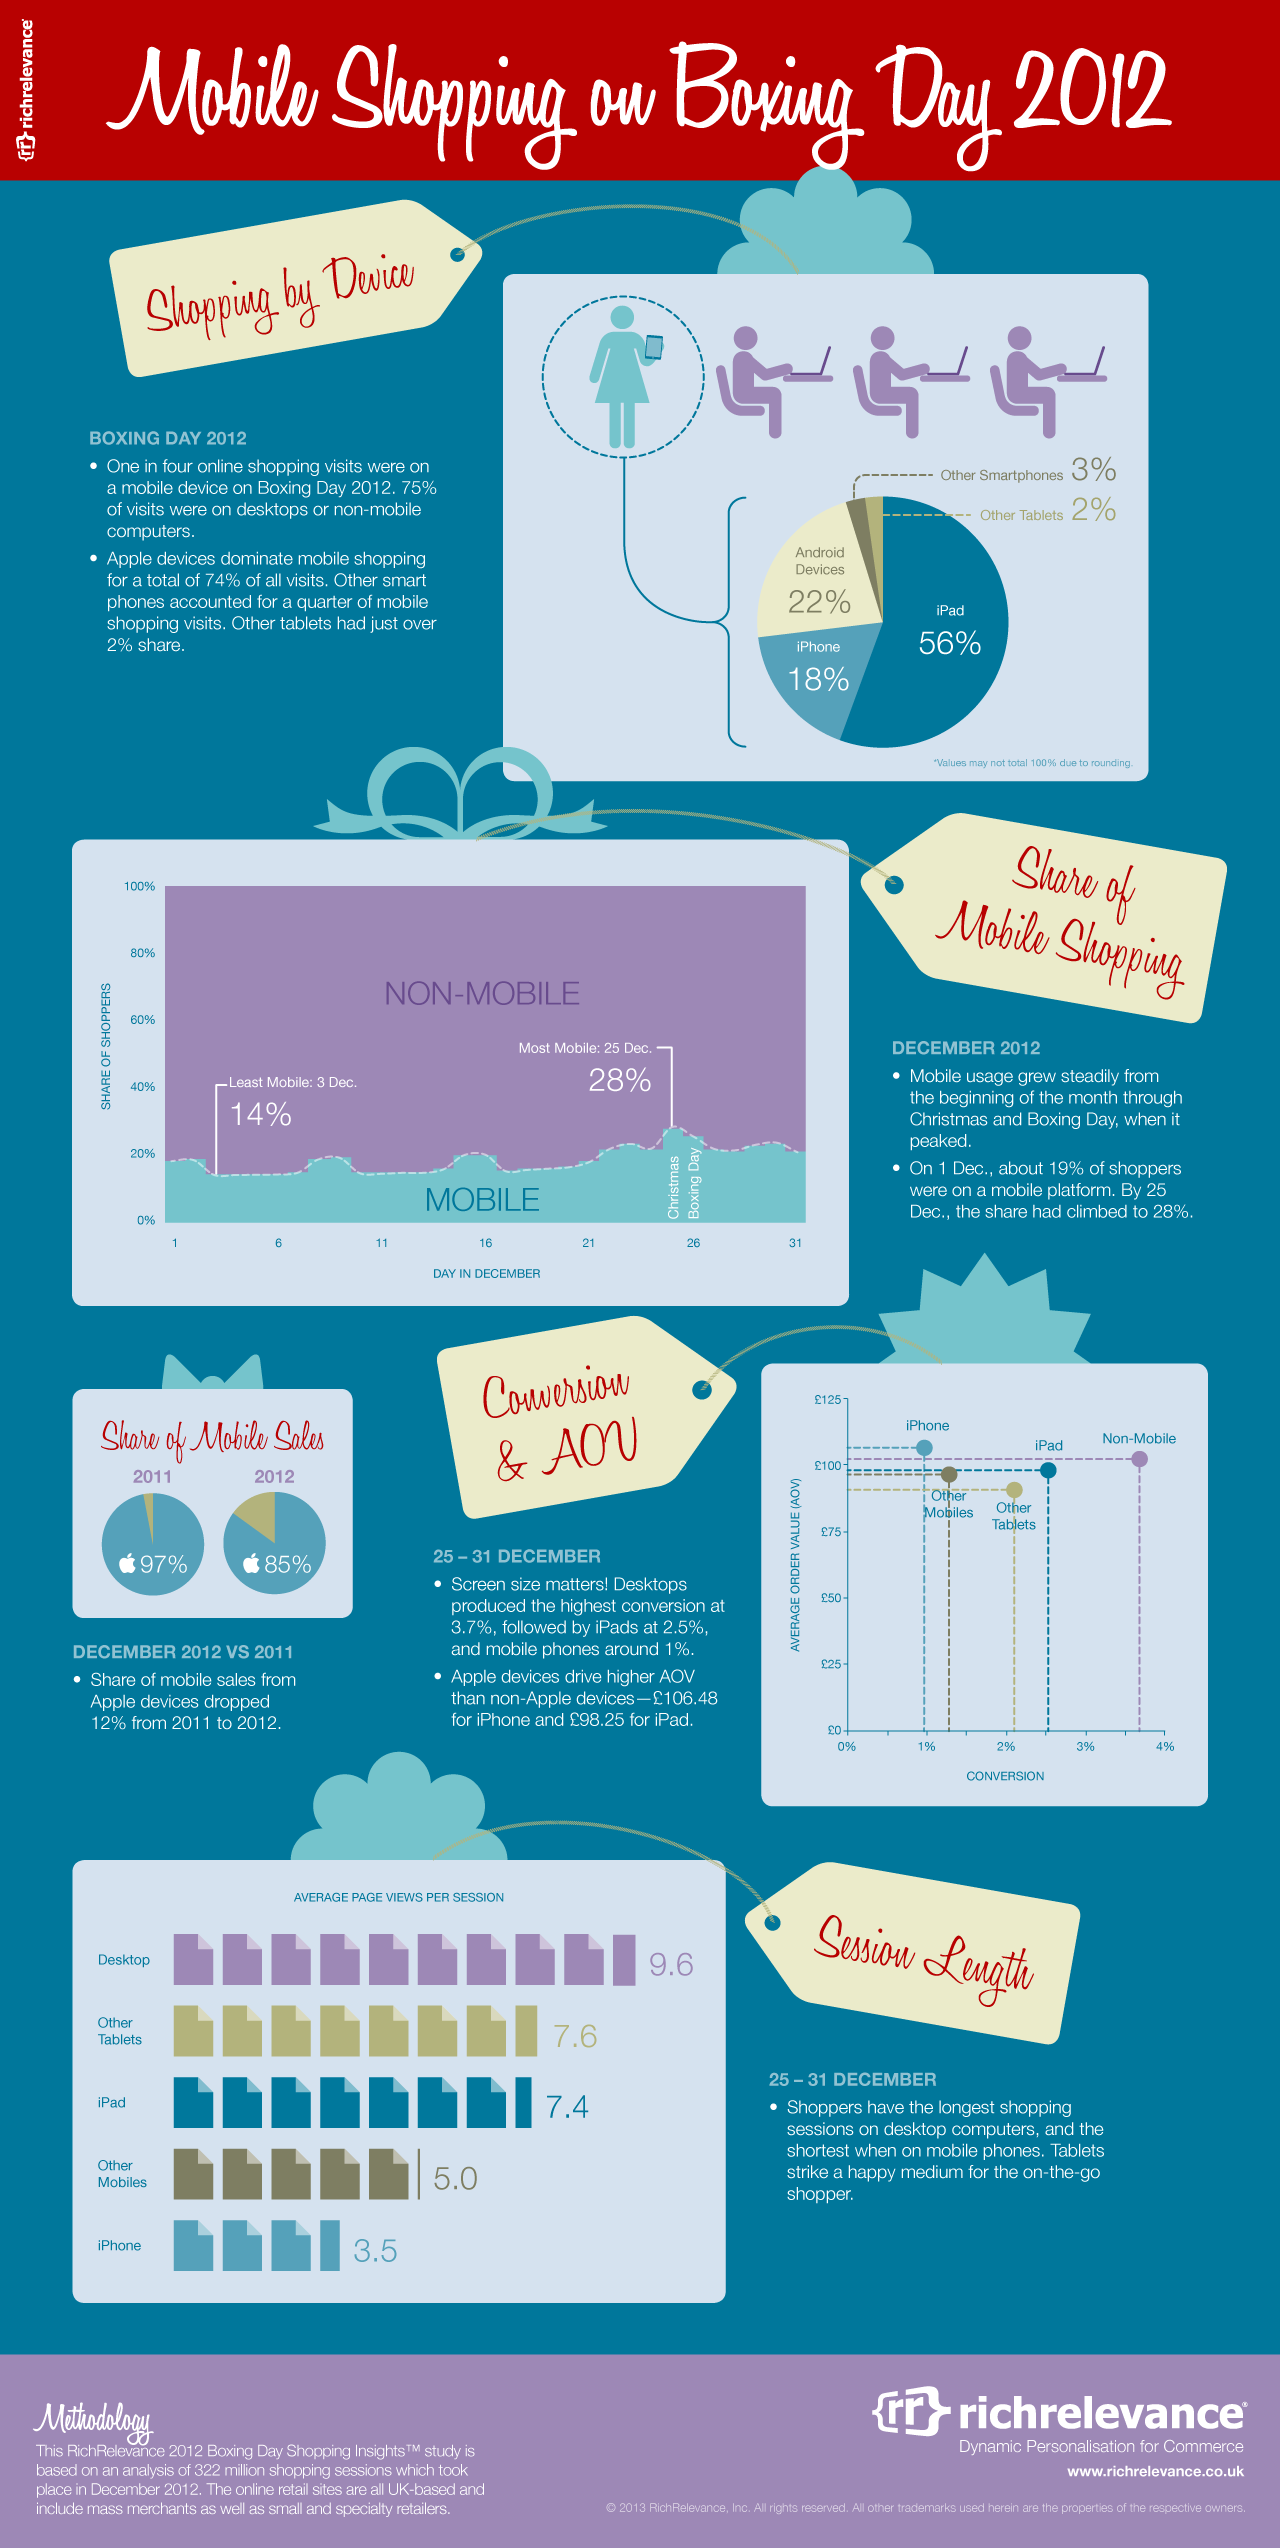 RichRelevance 2012 Boxing Day Shopping Insights™ Infographic